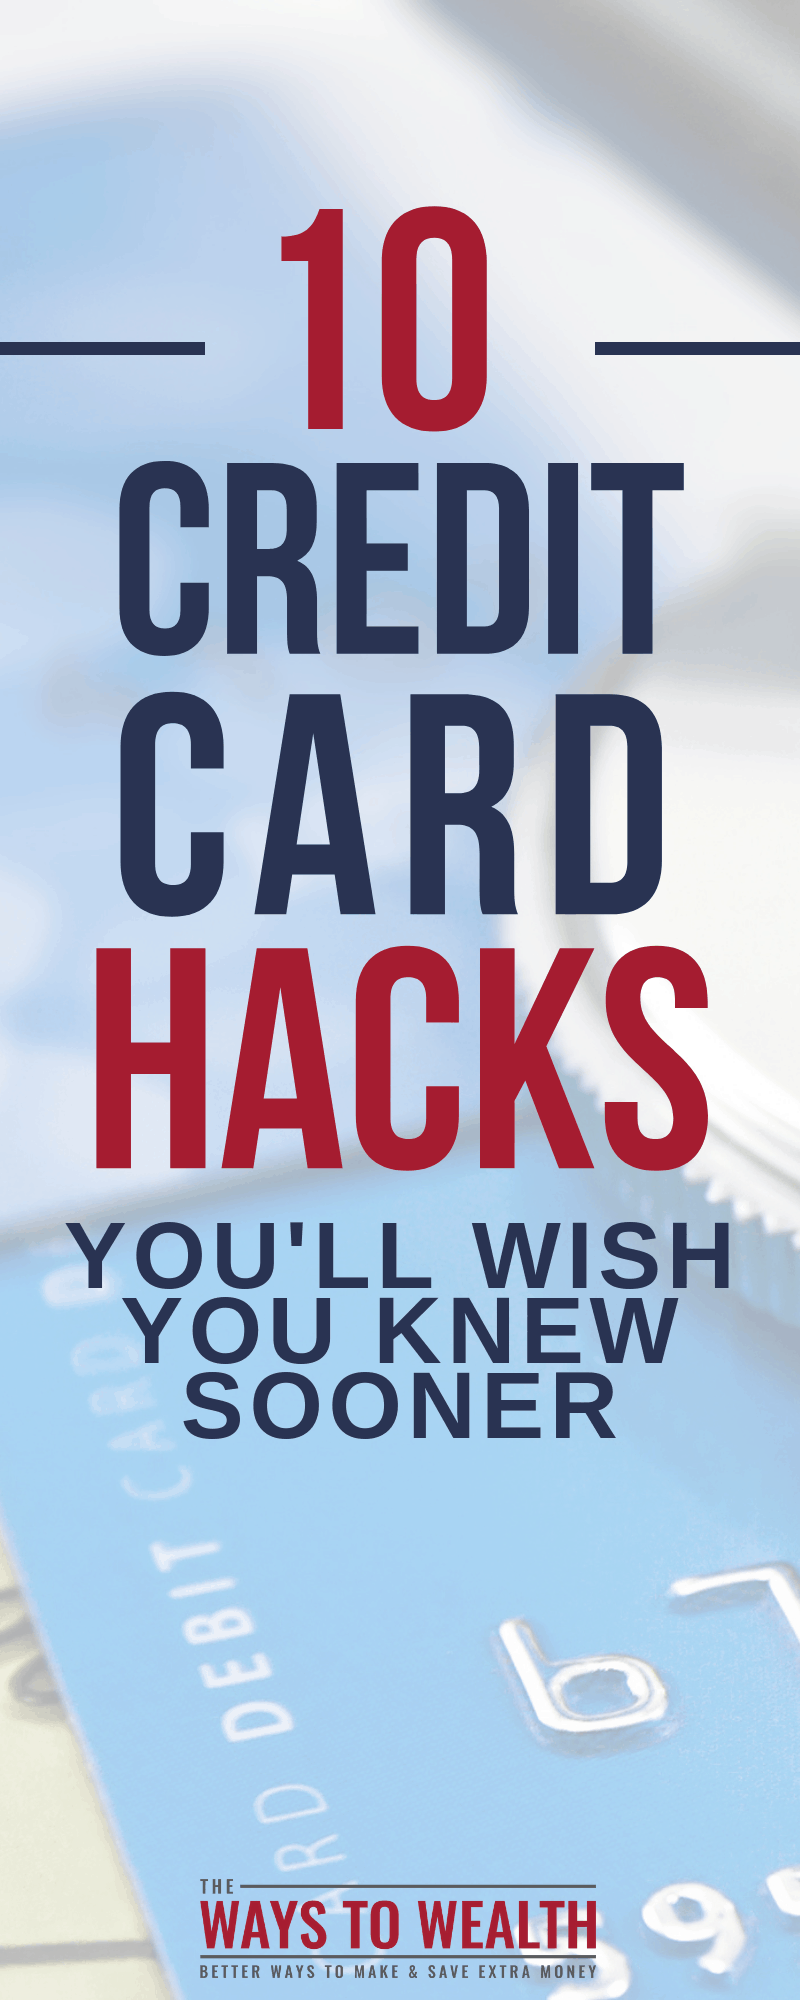 10 credit cards hacks you'll wish you knew sooner. Plus, learn how credit cards work: pros, cons, tips to maximizing credit card rewards. And is Dave Ramsey right about credit cards?#daveramsey #debt #creditcards #credit